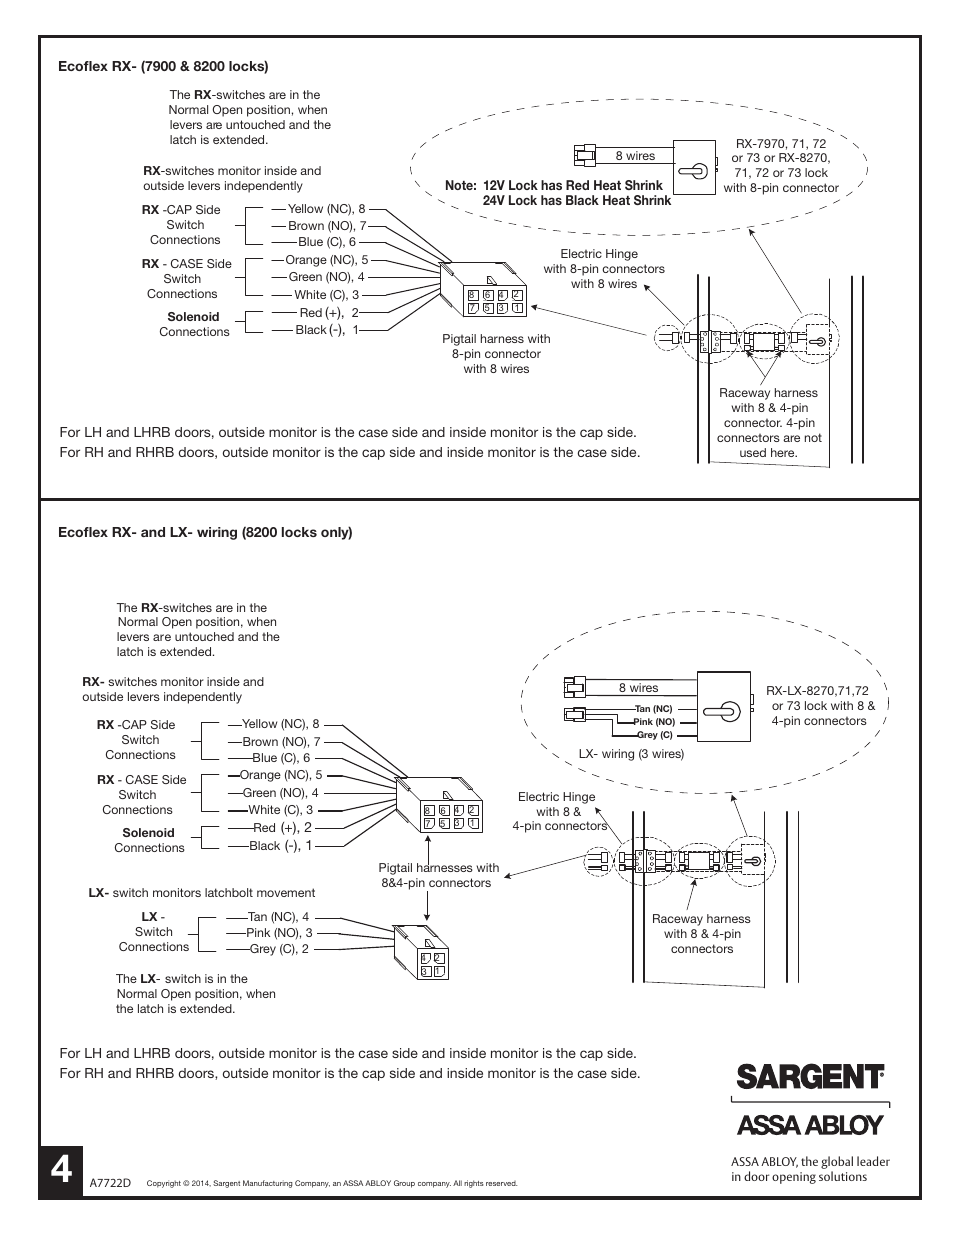 Wiring Diagrams By Sargent Locks - Wiring Diagram & Cable ... on